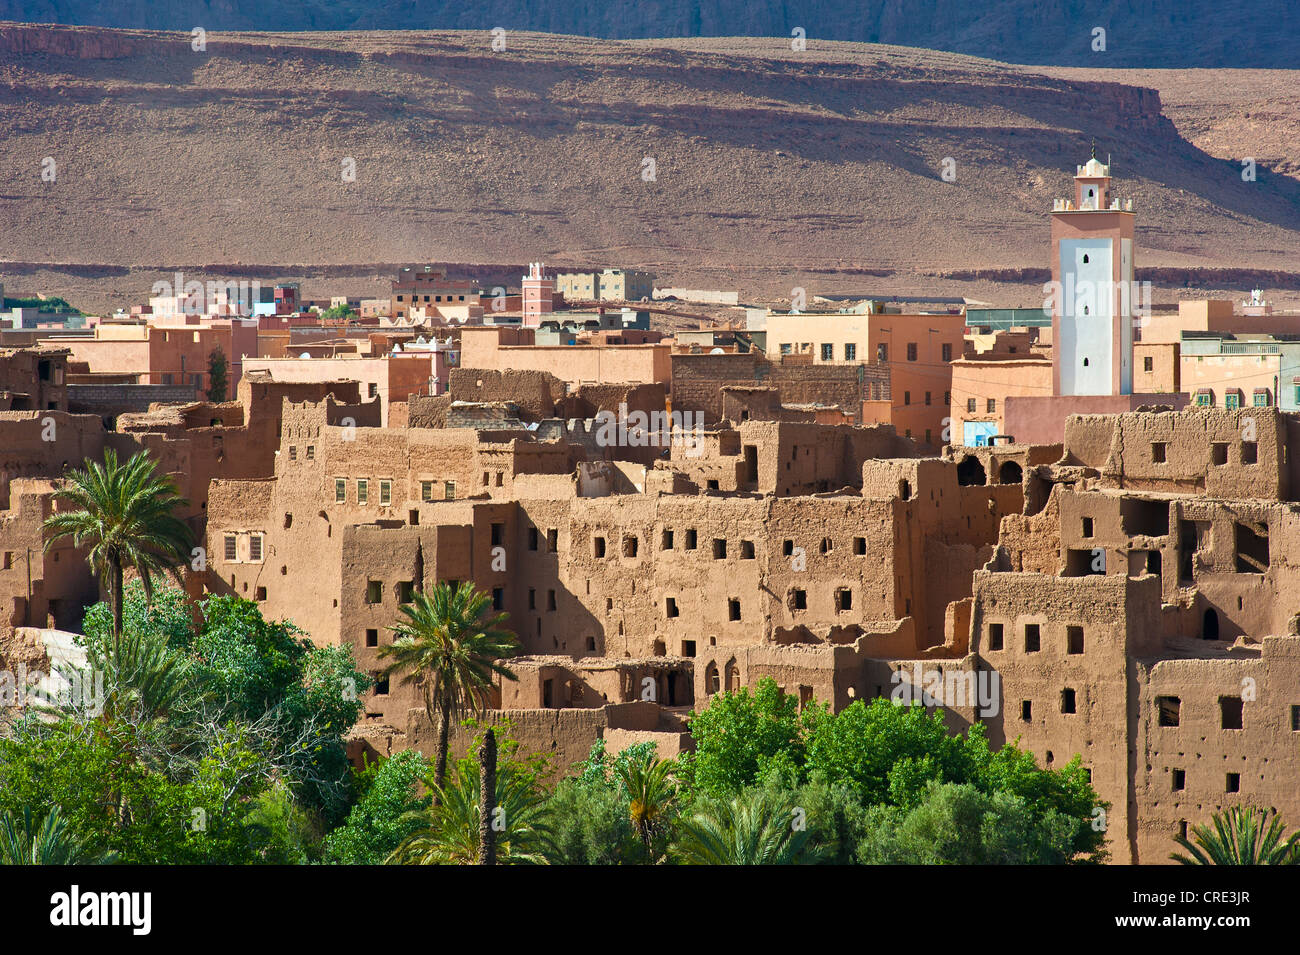 Oasis village, decaying kasbahs, mud fortresses, residential castles of the Berber tribe with modern houses and - Stock Image